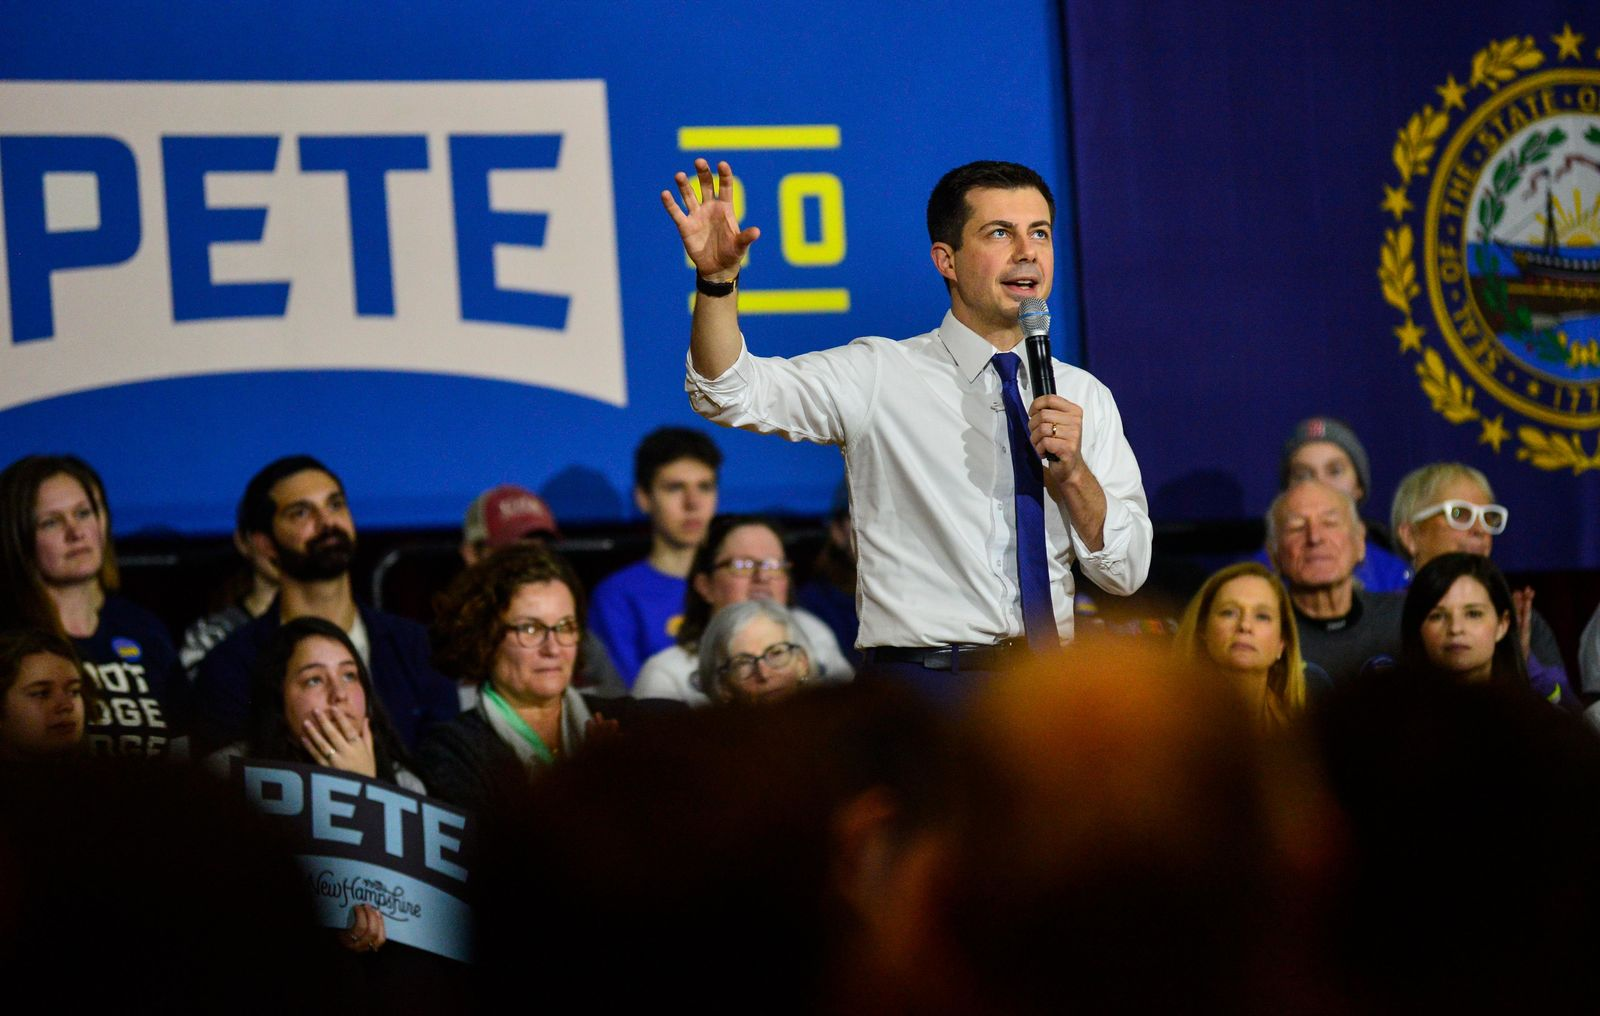 Democratic presidential candidate former South Bend, Ind., Mayor Pete Buttigieg holds a town hall meeting at Keene State College, in Keene, N.H., on Saturday, Feb. 8, 2020. (Kristopher Radder /The Brattleboro Reformer via AP)